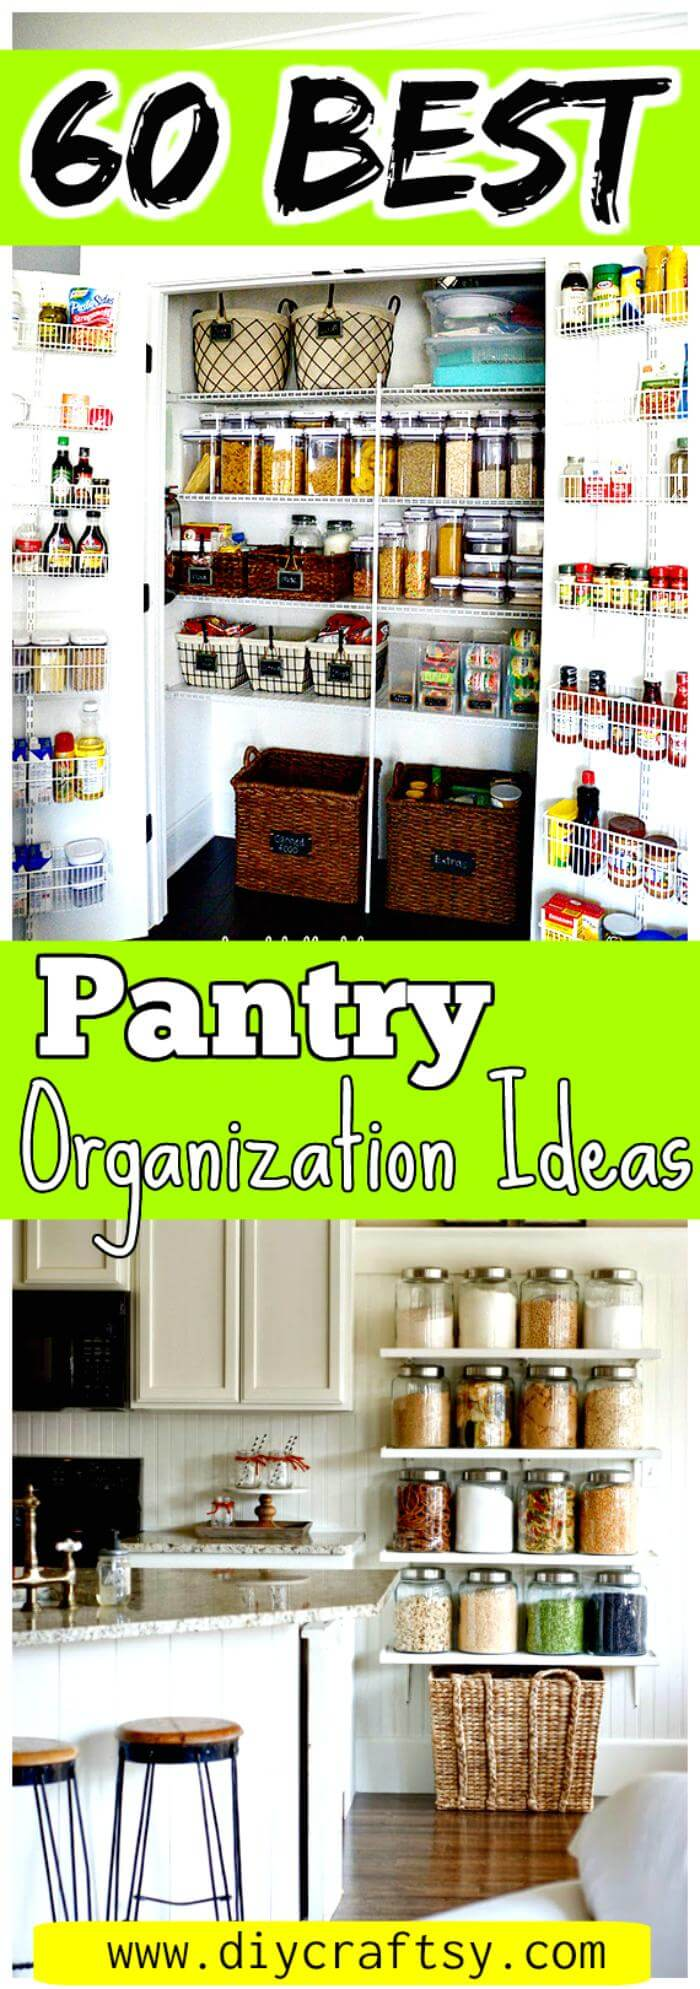 Kitchen Pantry Diy Projects: 60 Best Pantry Organization Ideas